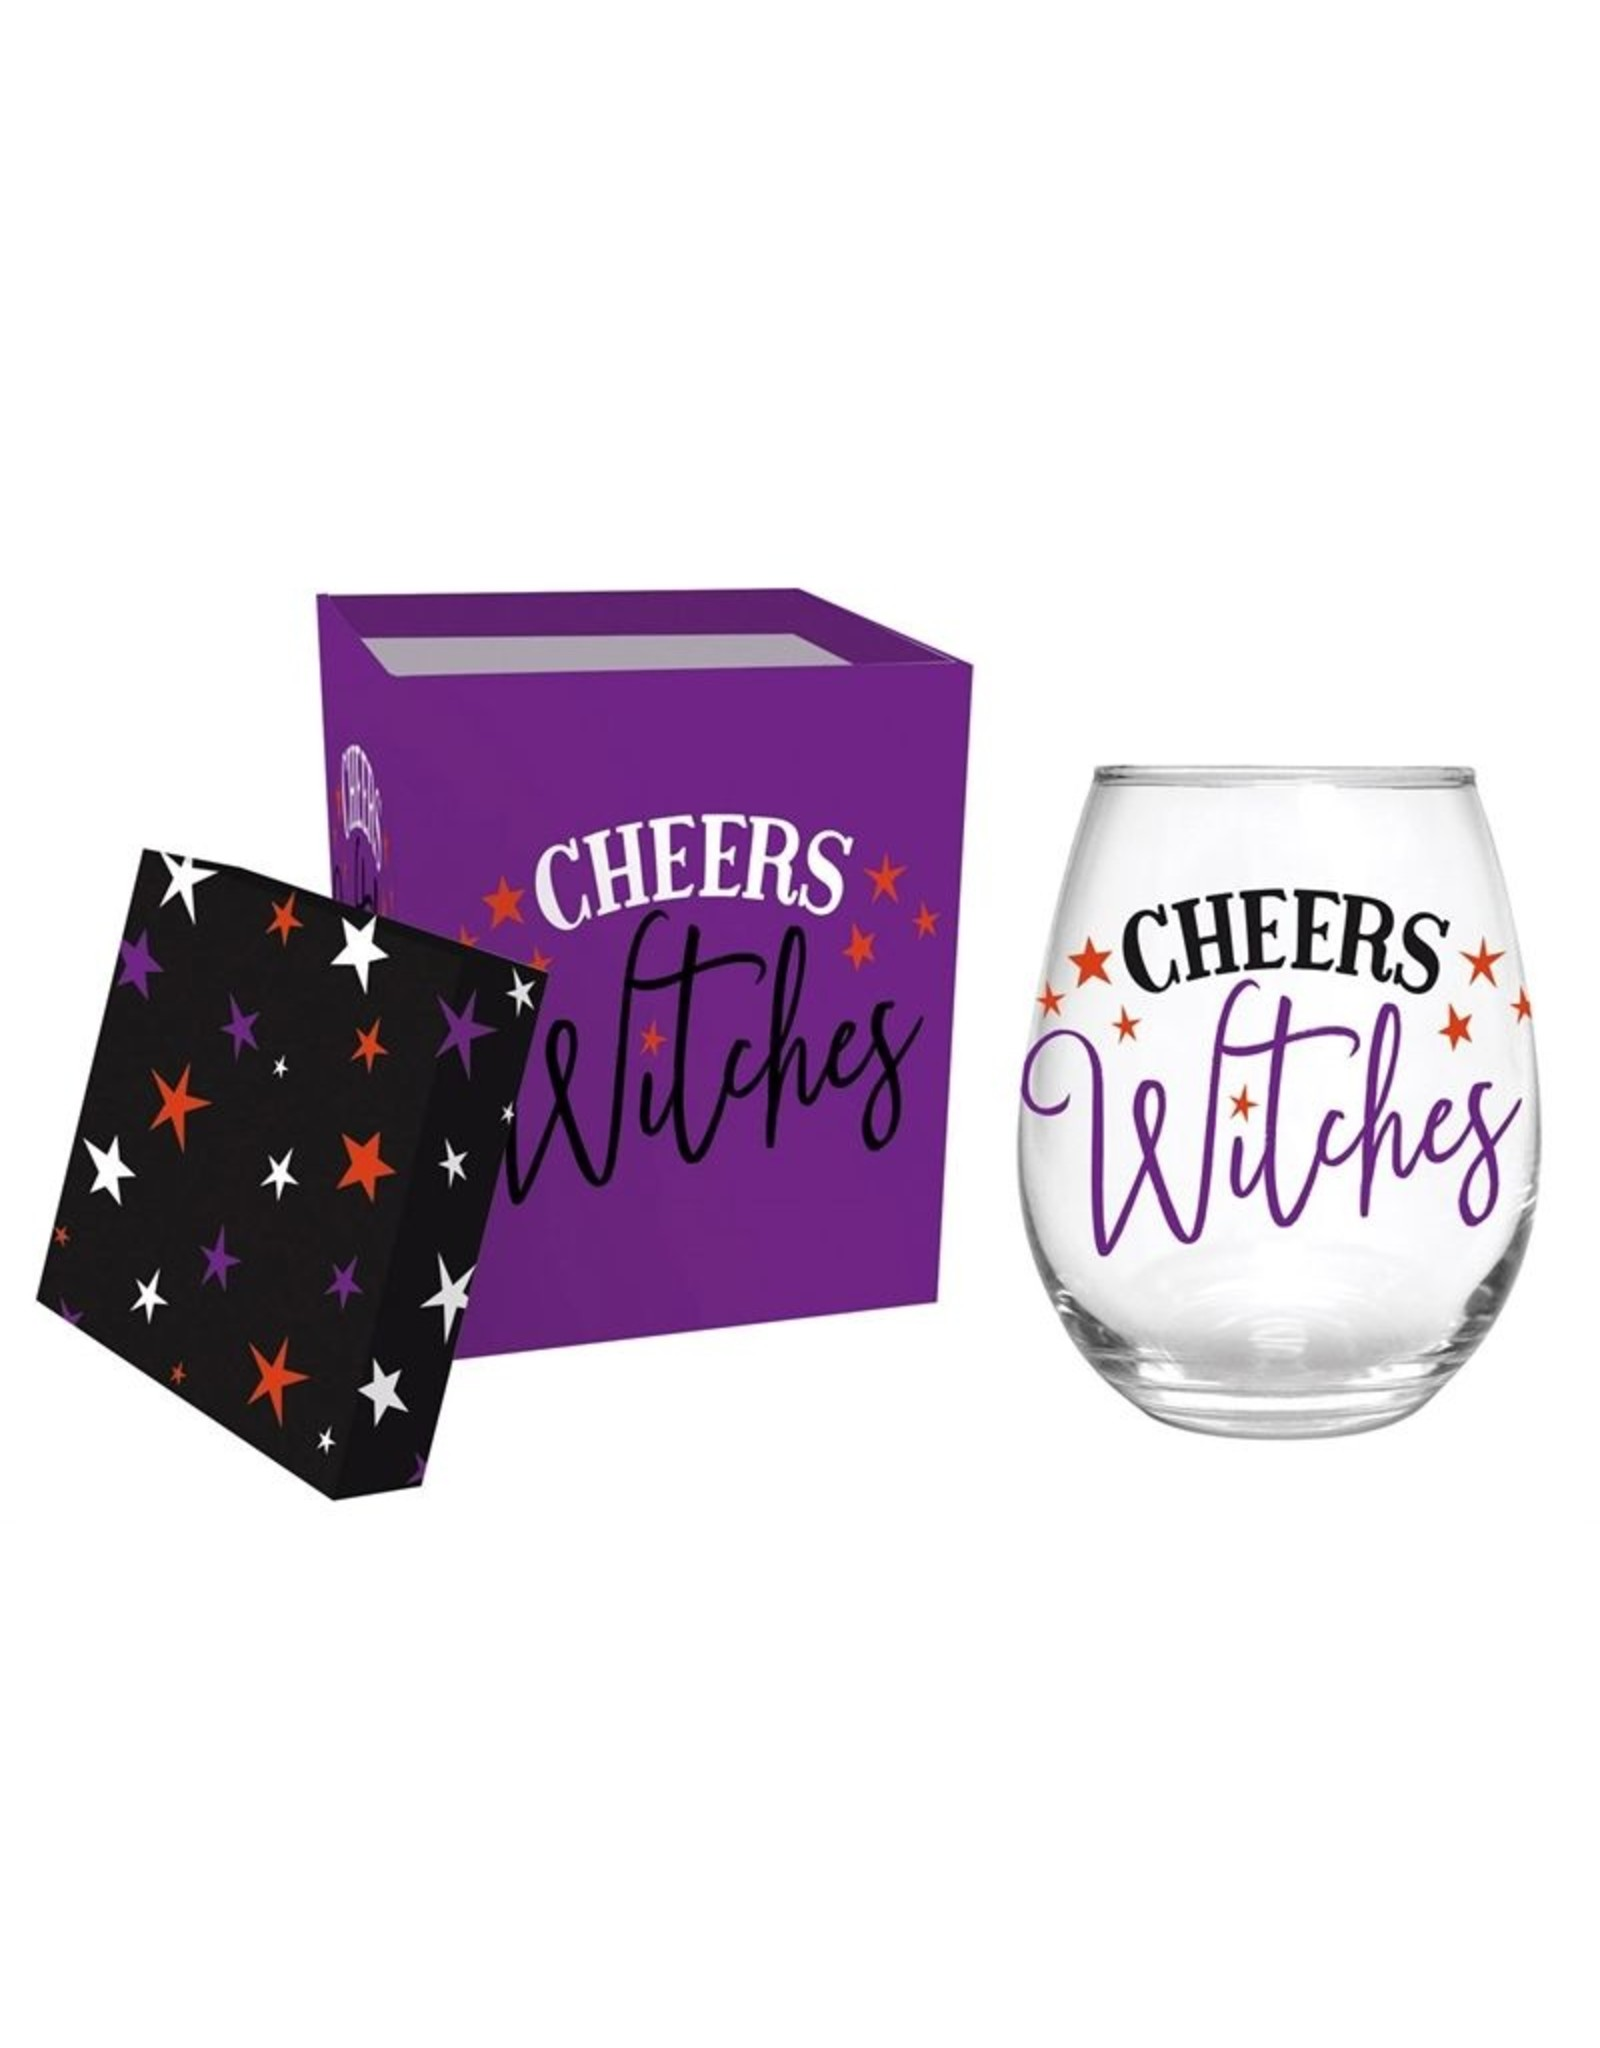 Evergreen Enterprises Cheers Witches Stemless Wine Glass W/Box